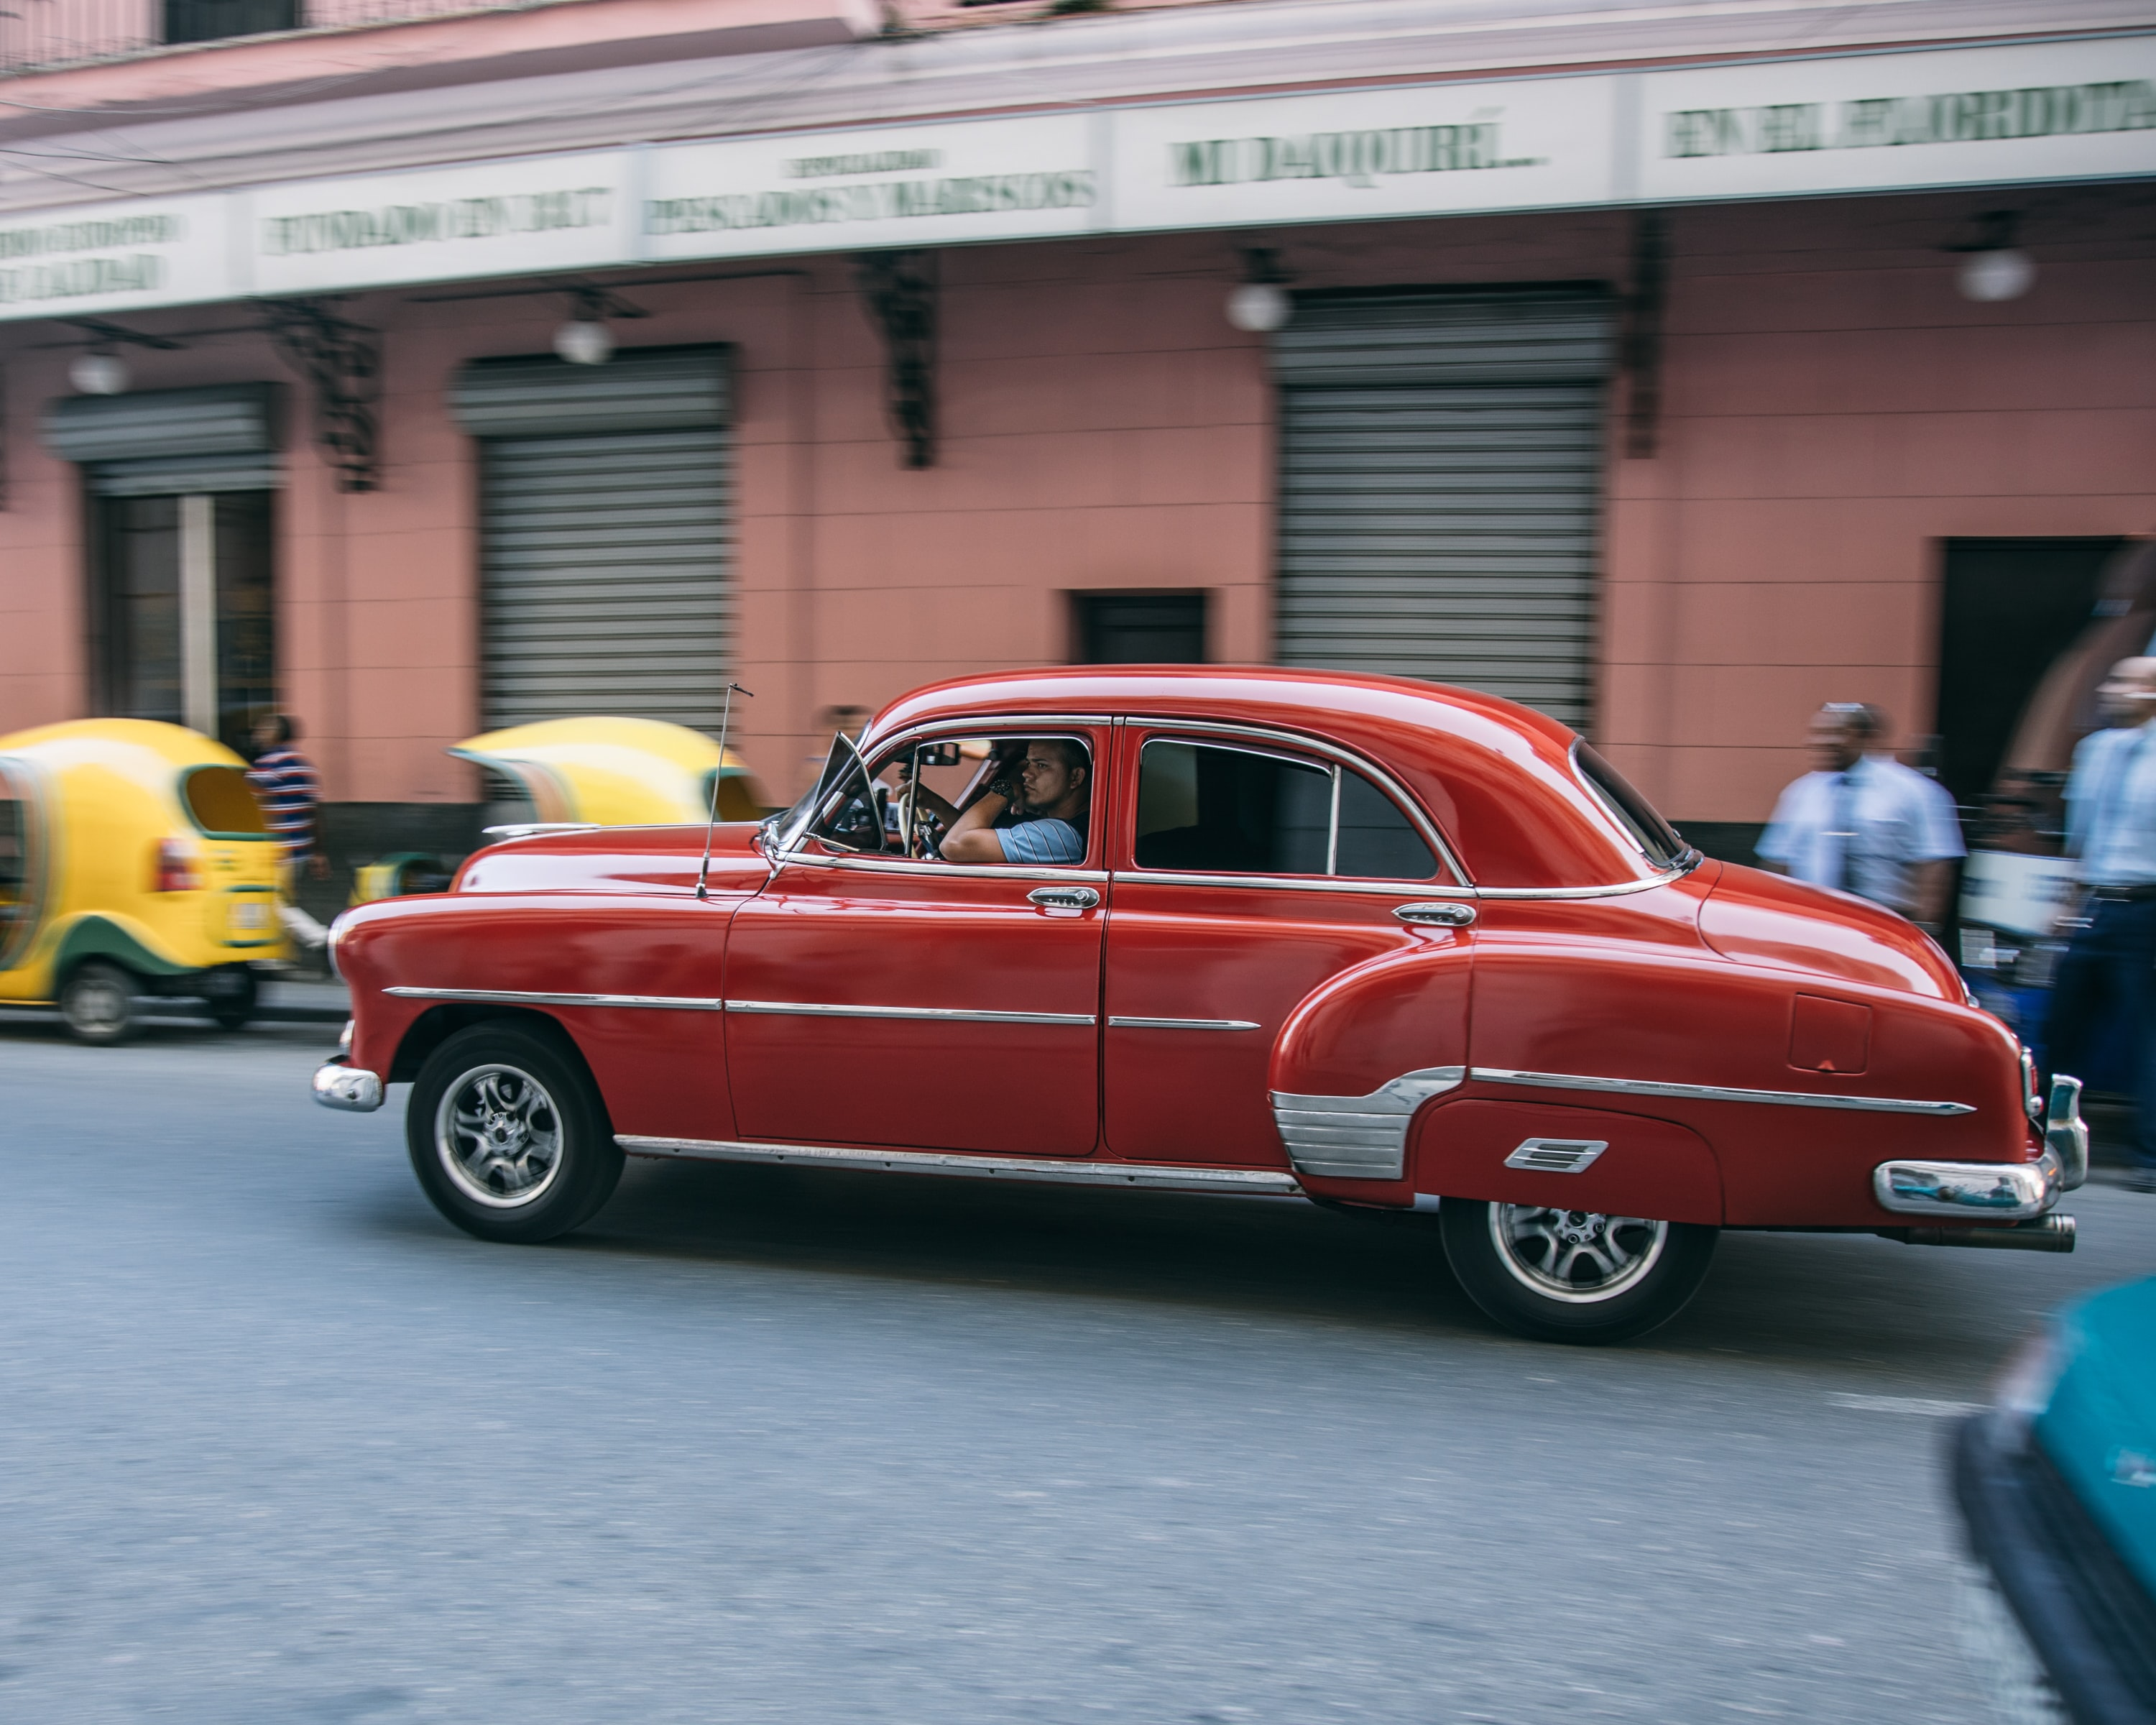 A shiny red vintage car drives through the streets of  La Habana, Cuba